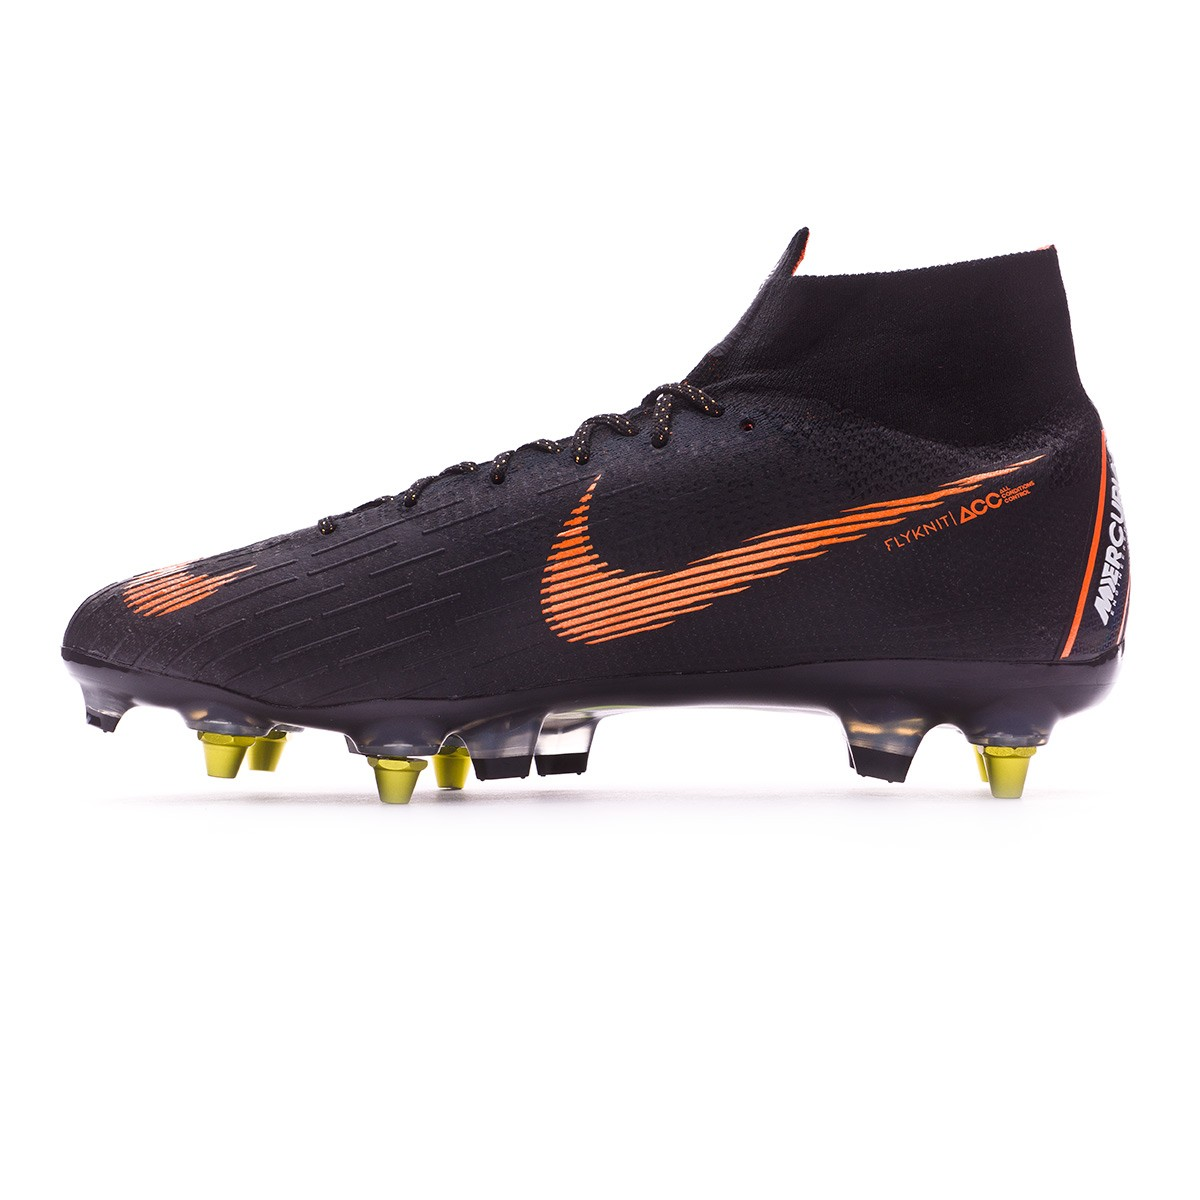 68a28ef96 Football Boots Nike Mercurial Superfly VI Elite SG-Pro Anti-Clog Black-Total  orange-White - Football store Fútbol Emotion